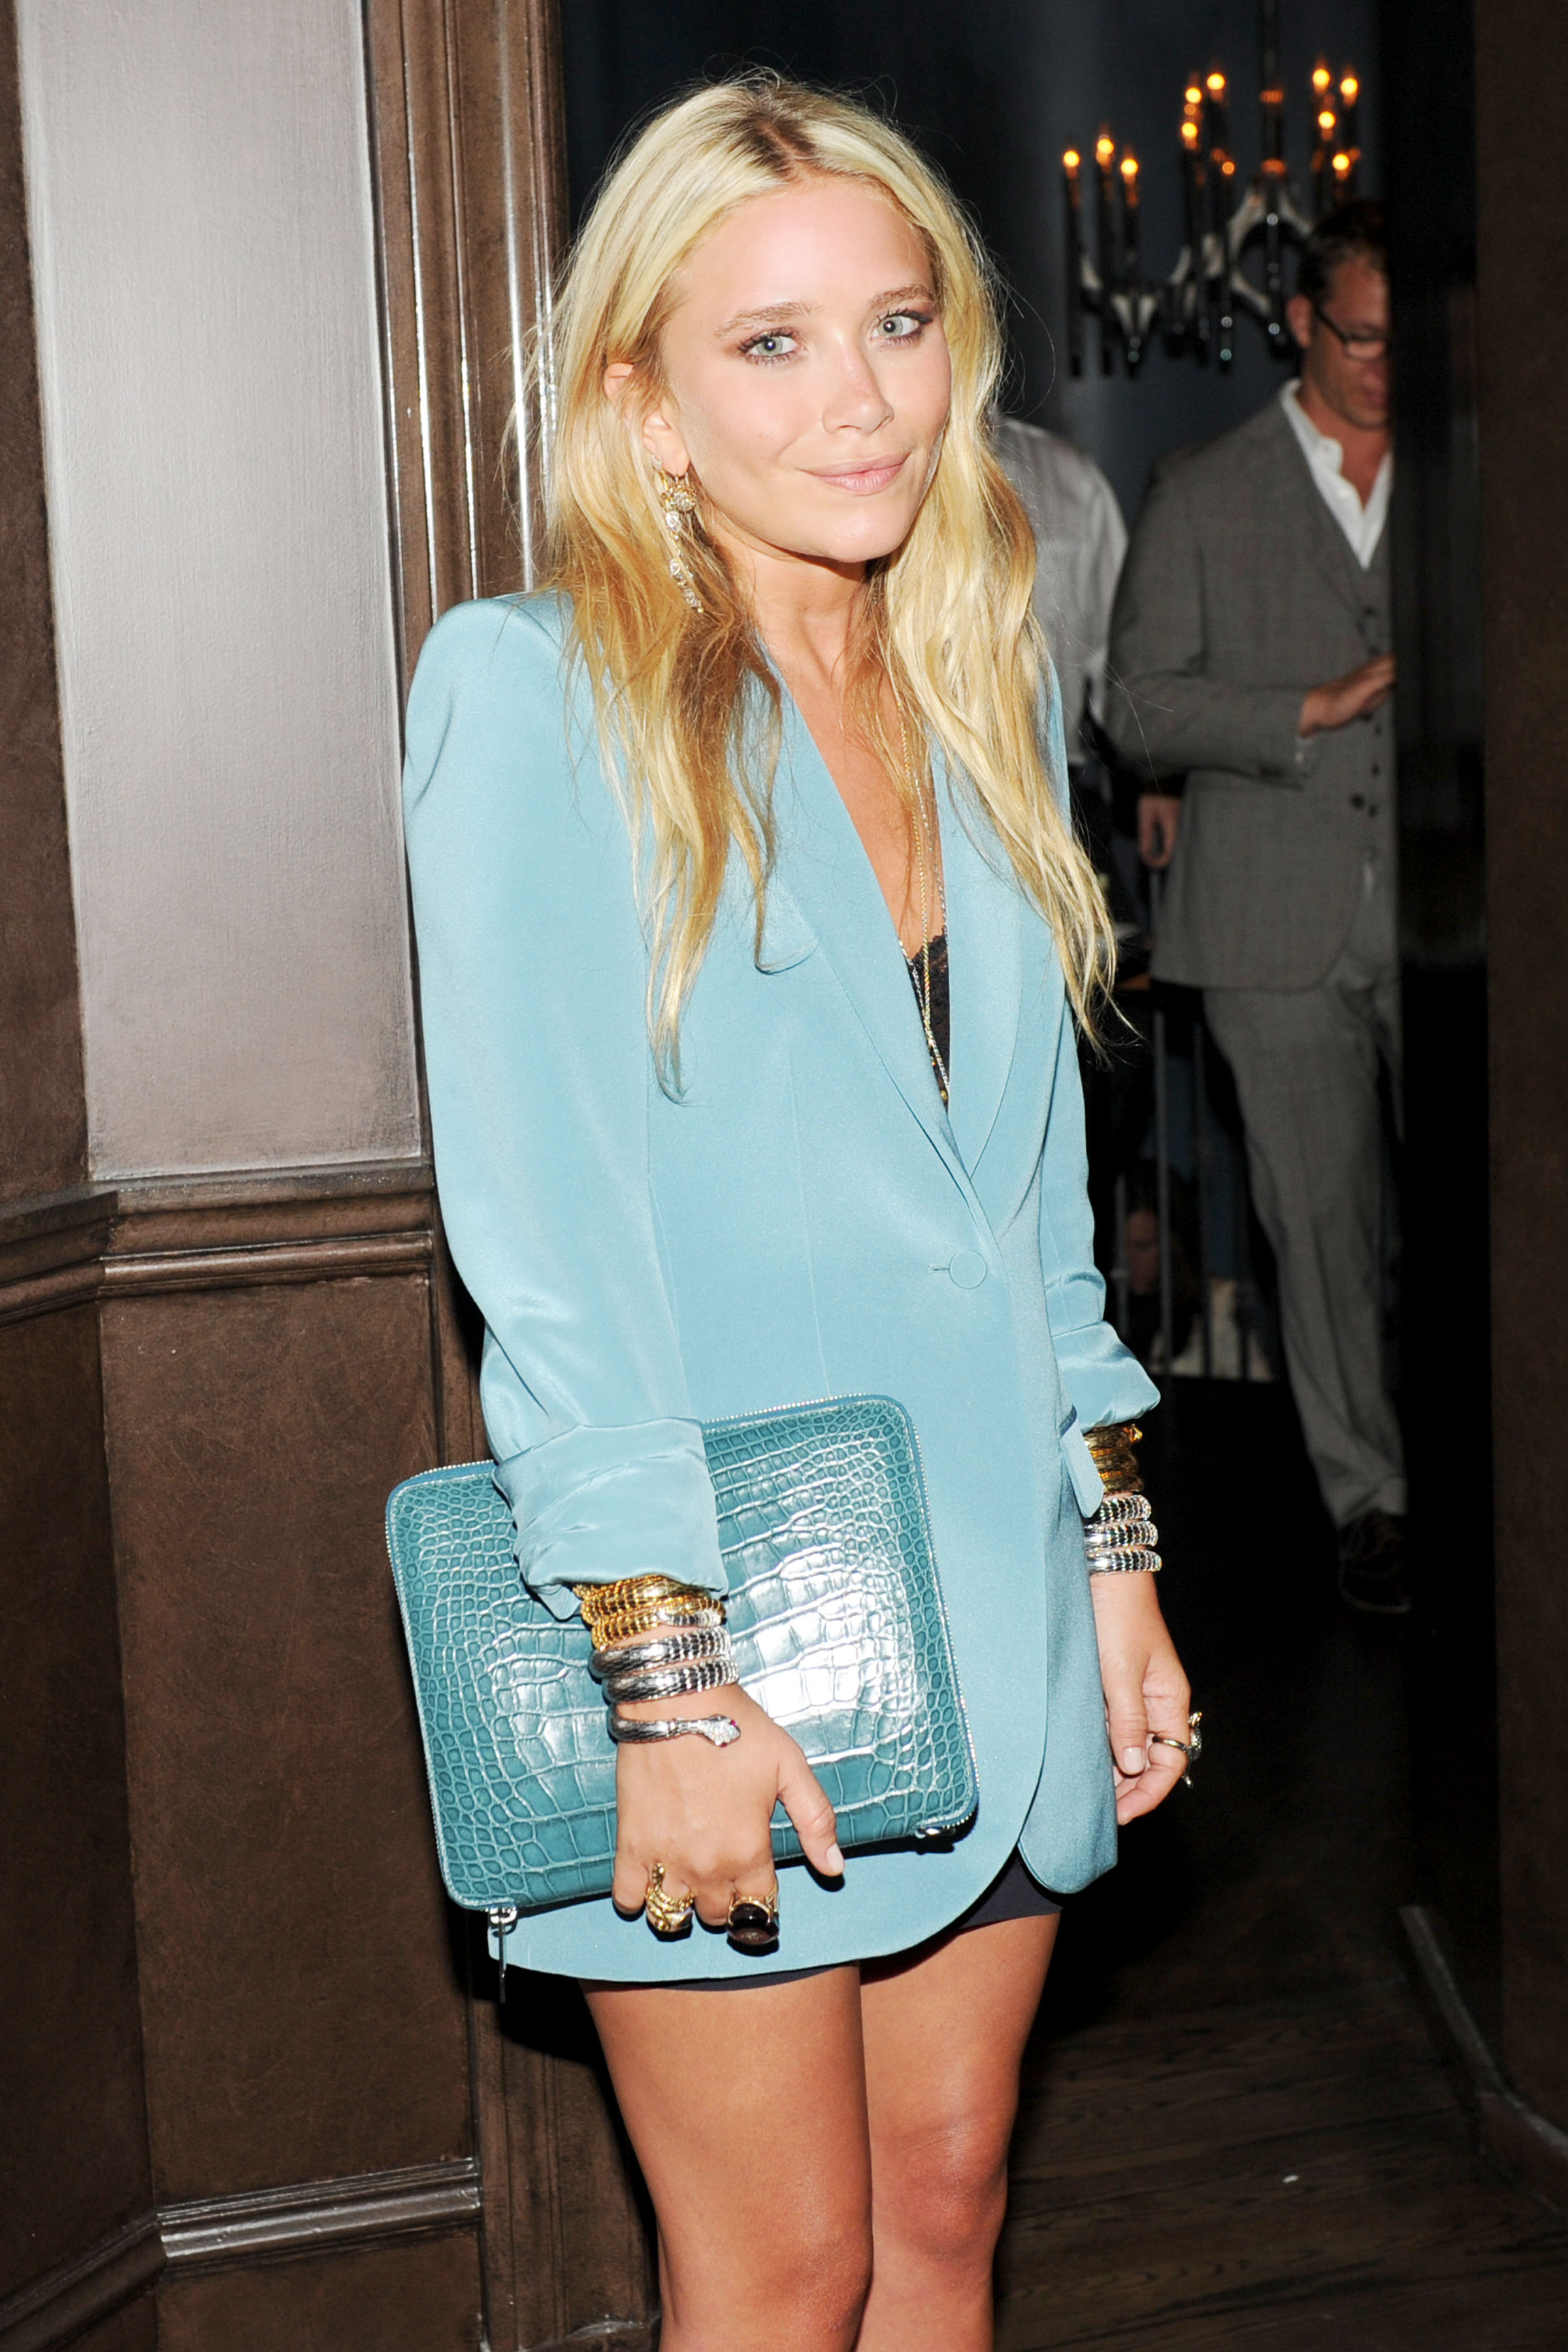 MAry-Kate Olsen at The Crown for The Row's handbag dinner.